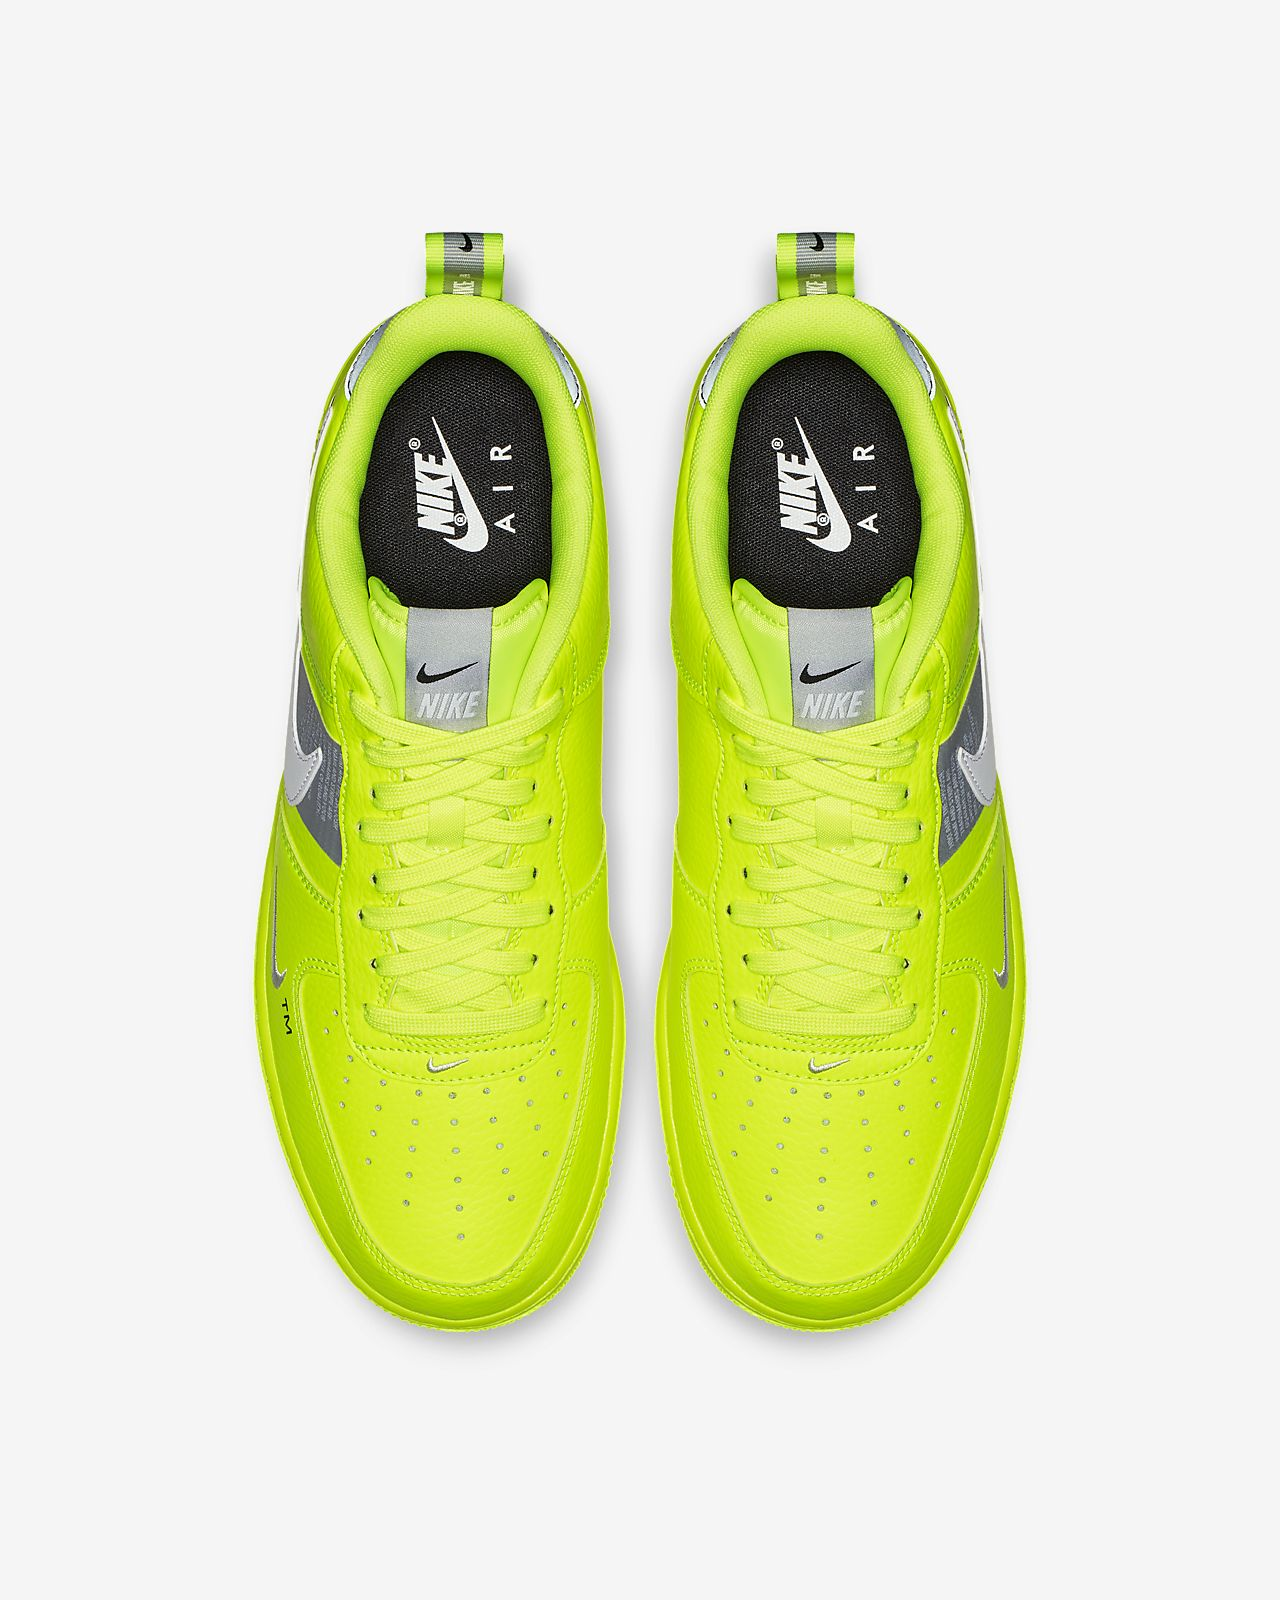 Nike Air Force 1 Low Utility Bright Volt AJ7747 700 On Sale